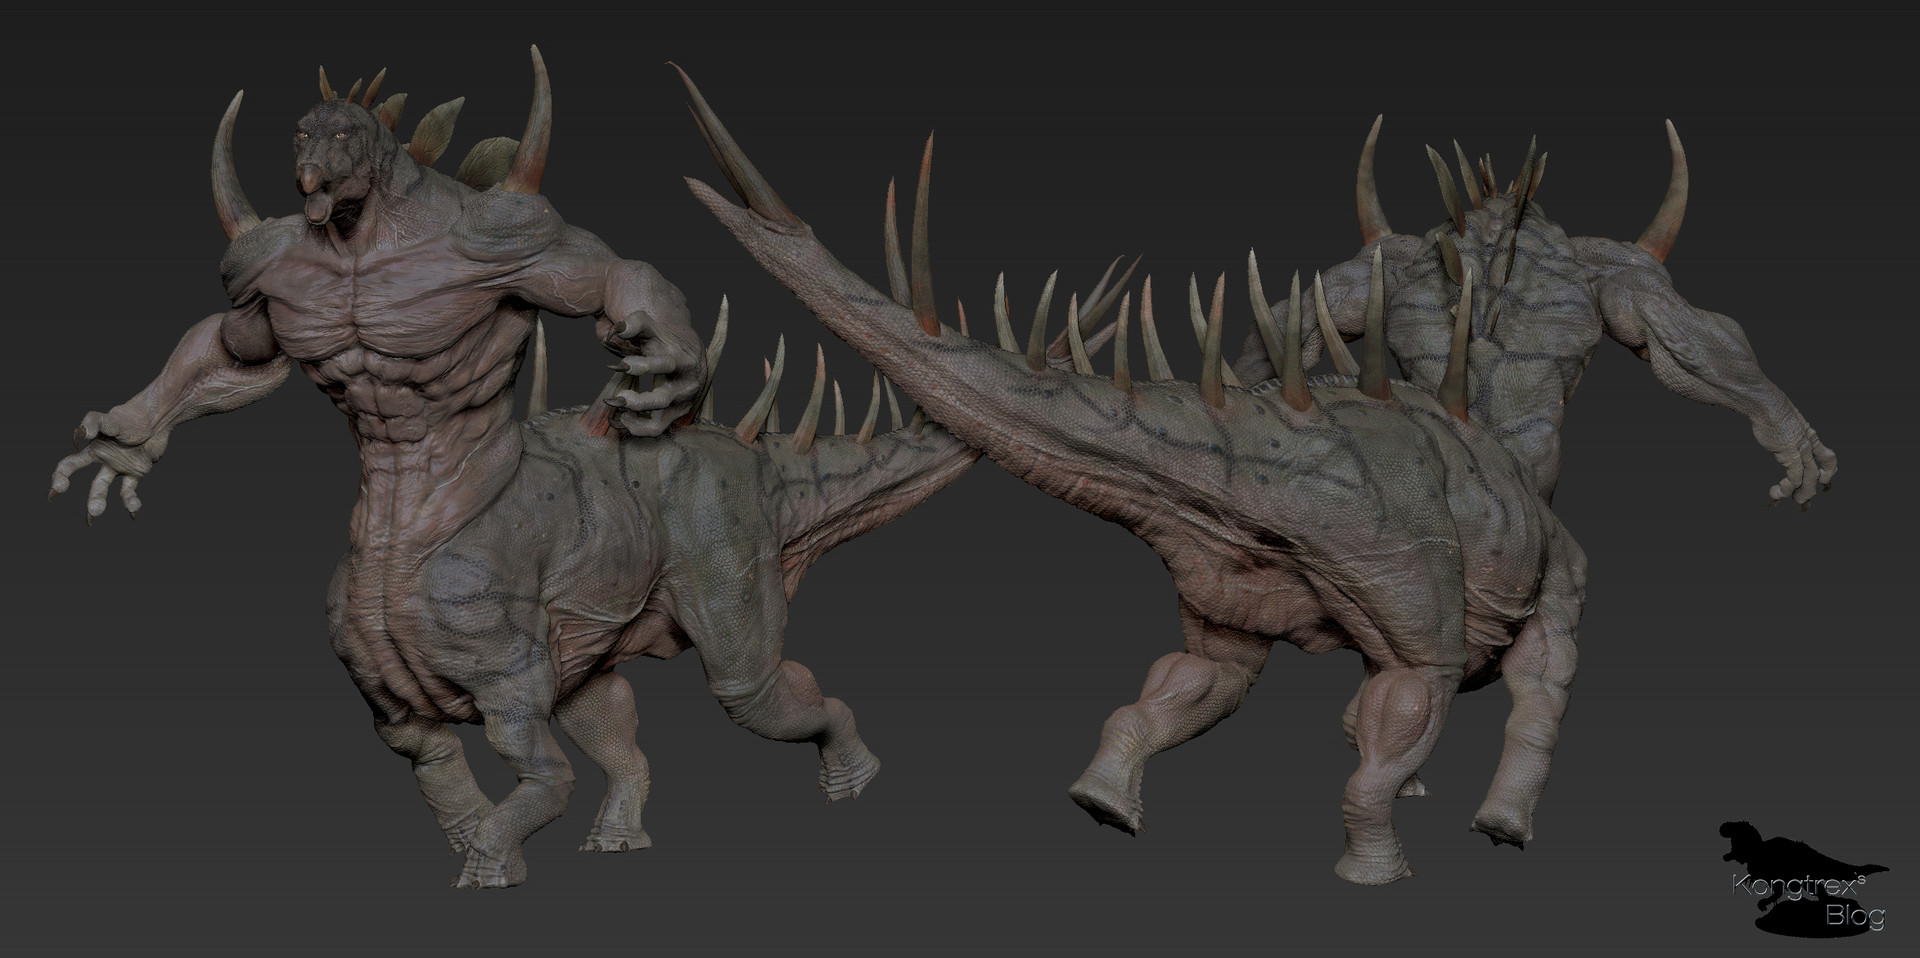 Jin kyeom kim zbrush document10